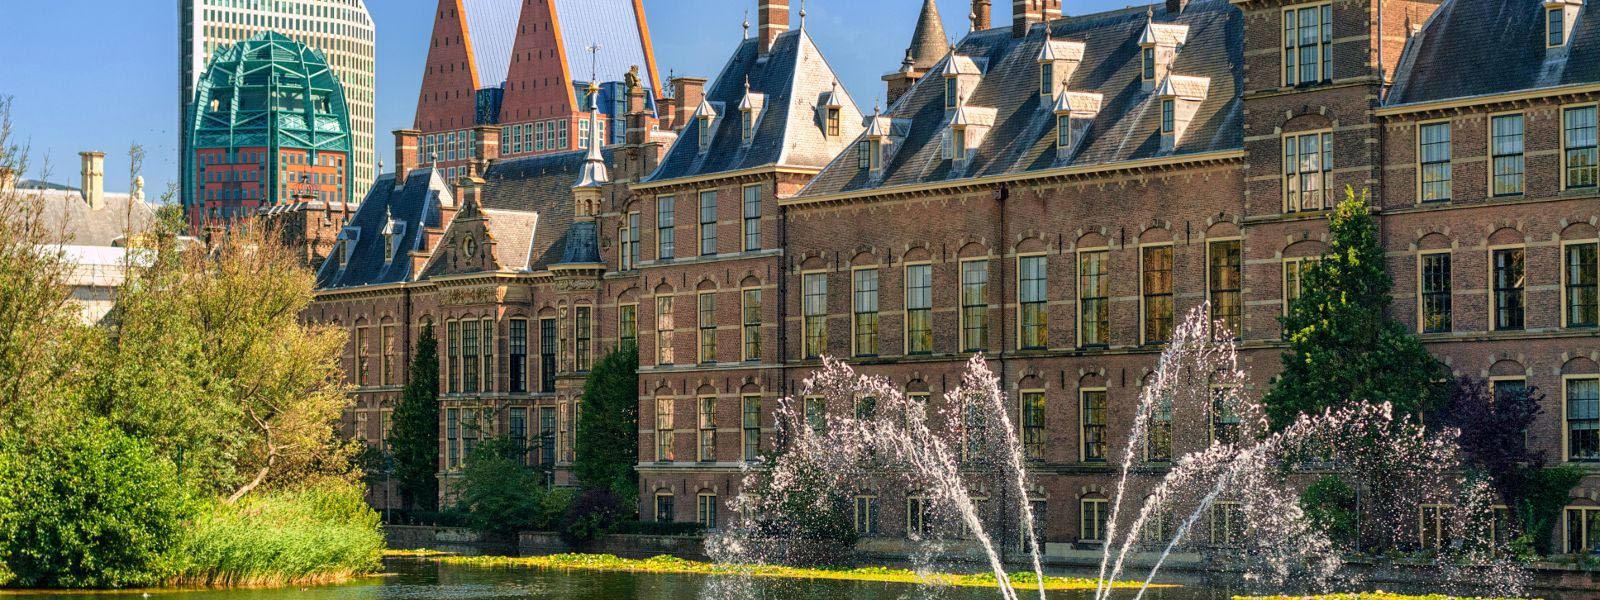 Cheap Train Tickets to The Hague   GoEuro